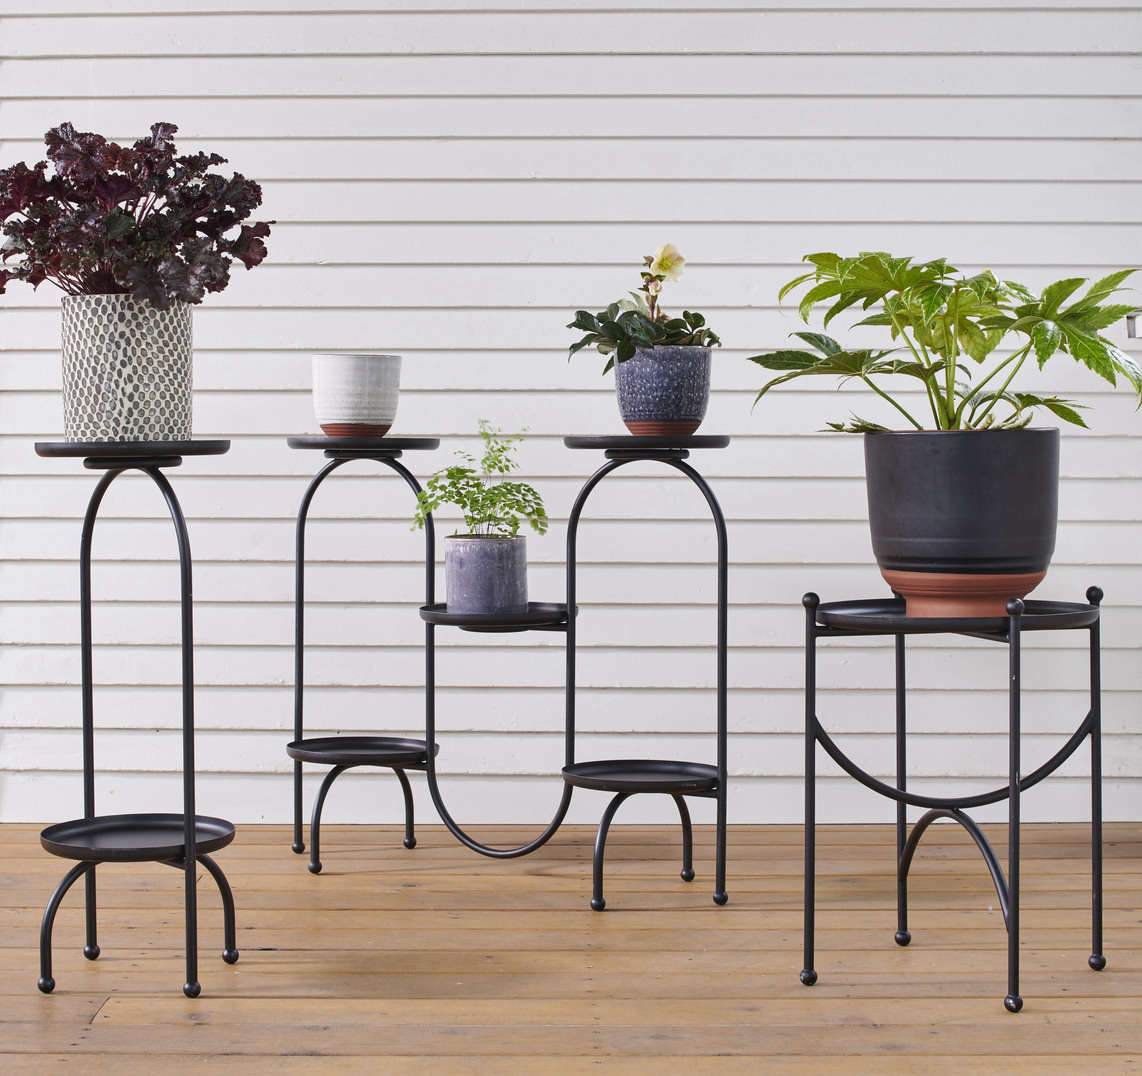 Rejuvenation's got plant stands, too. Mix and match any of their petite planters on these Scandinavian-inspired Black Tray Plant Stands—available in one-tray ($9), two-tray ($src=